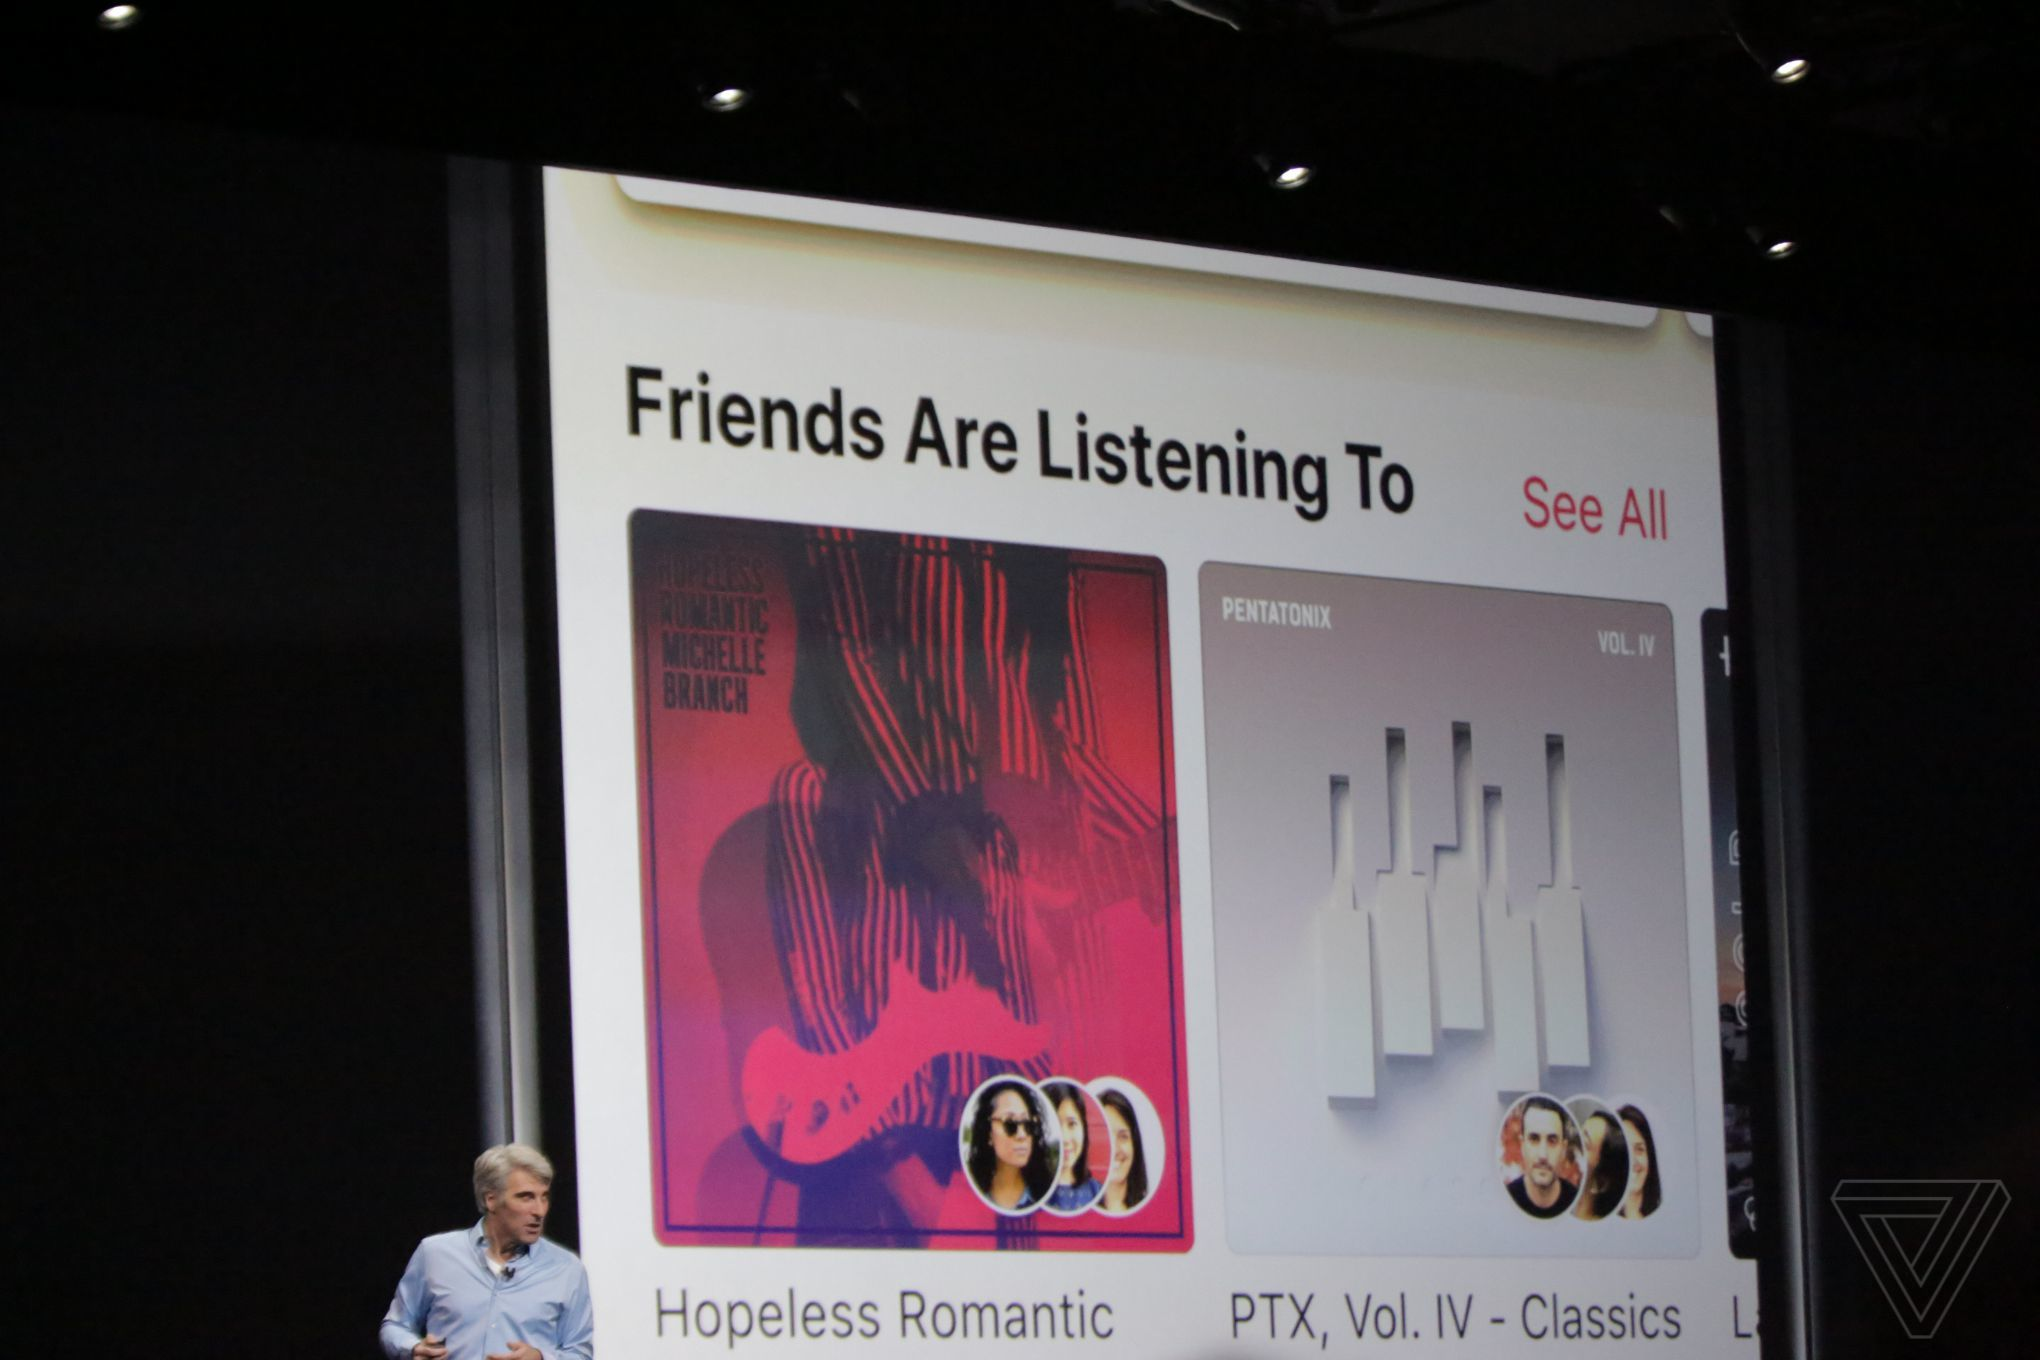 Apple Music at 27 Million Subscribers, Still Trailing Spotify